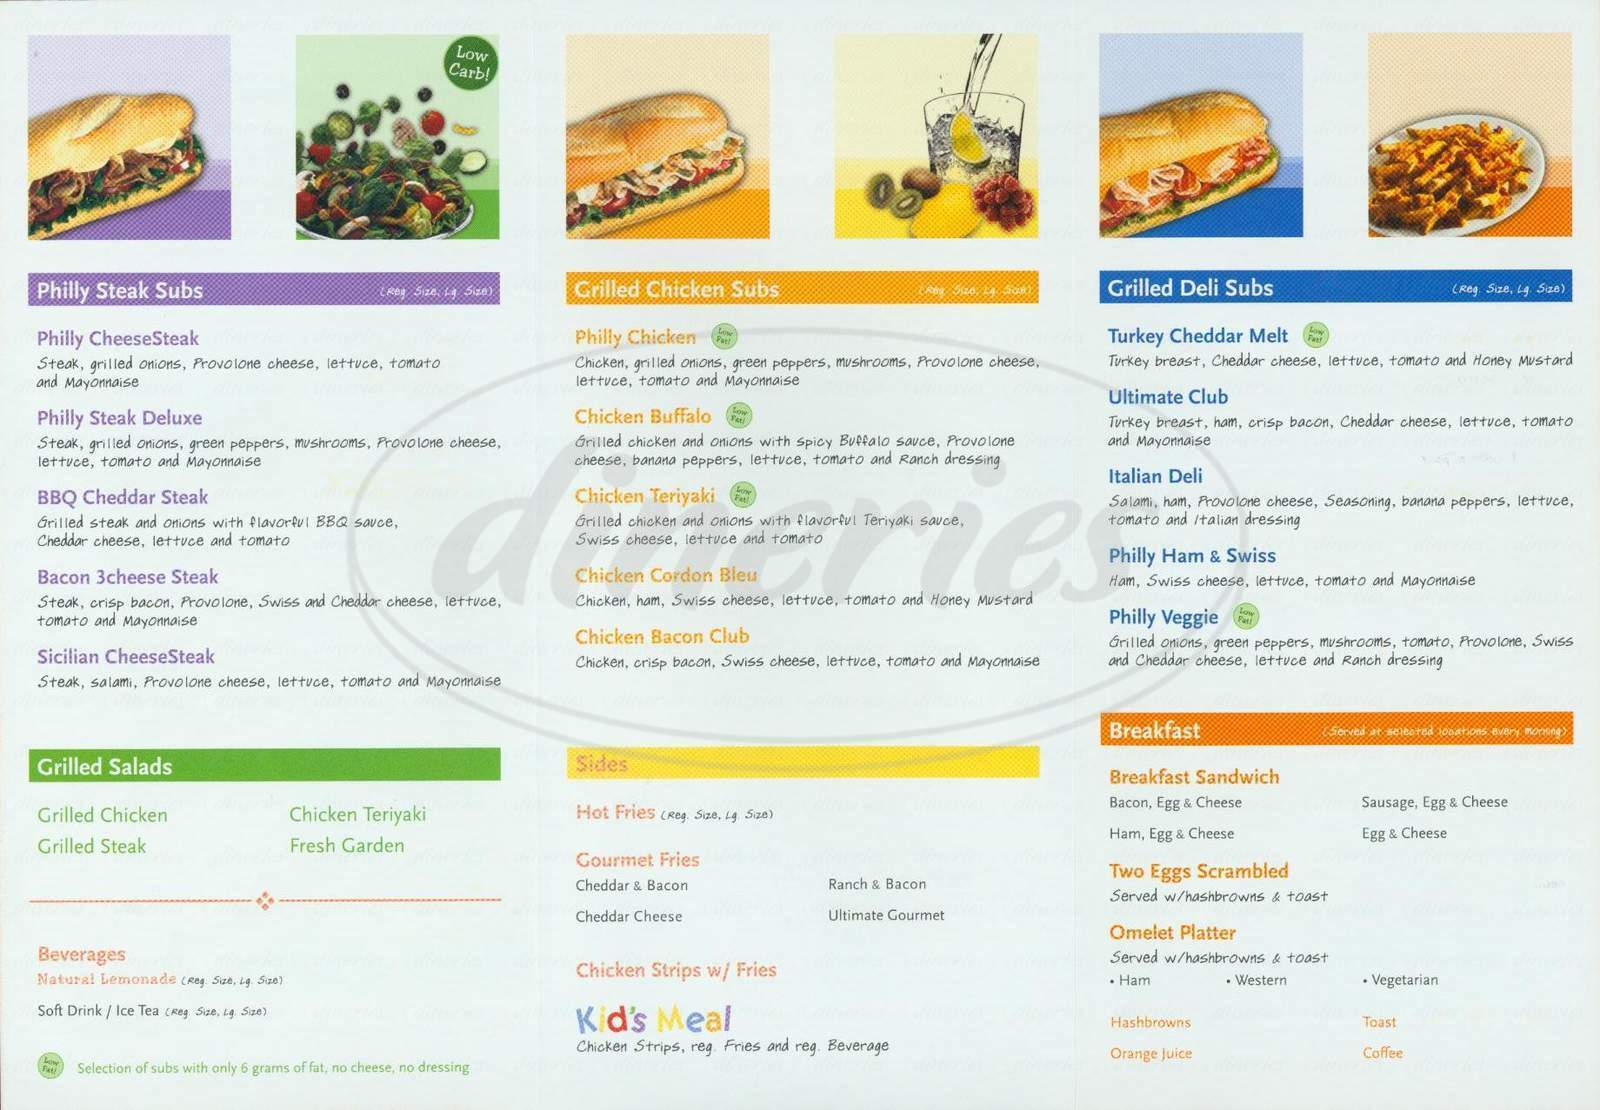 menu for Charley's Grilled Subs